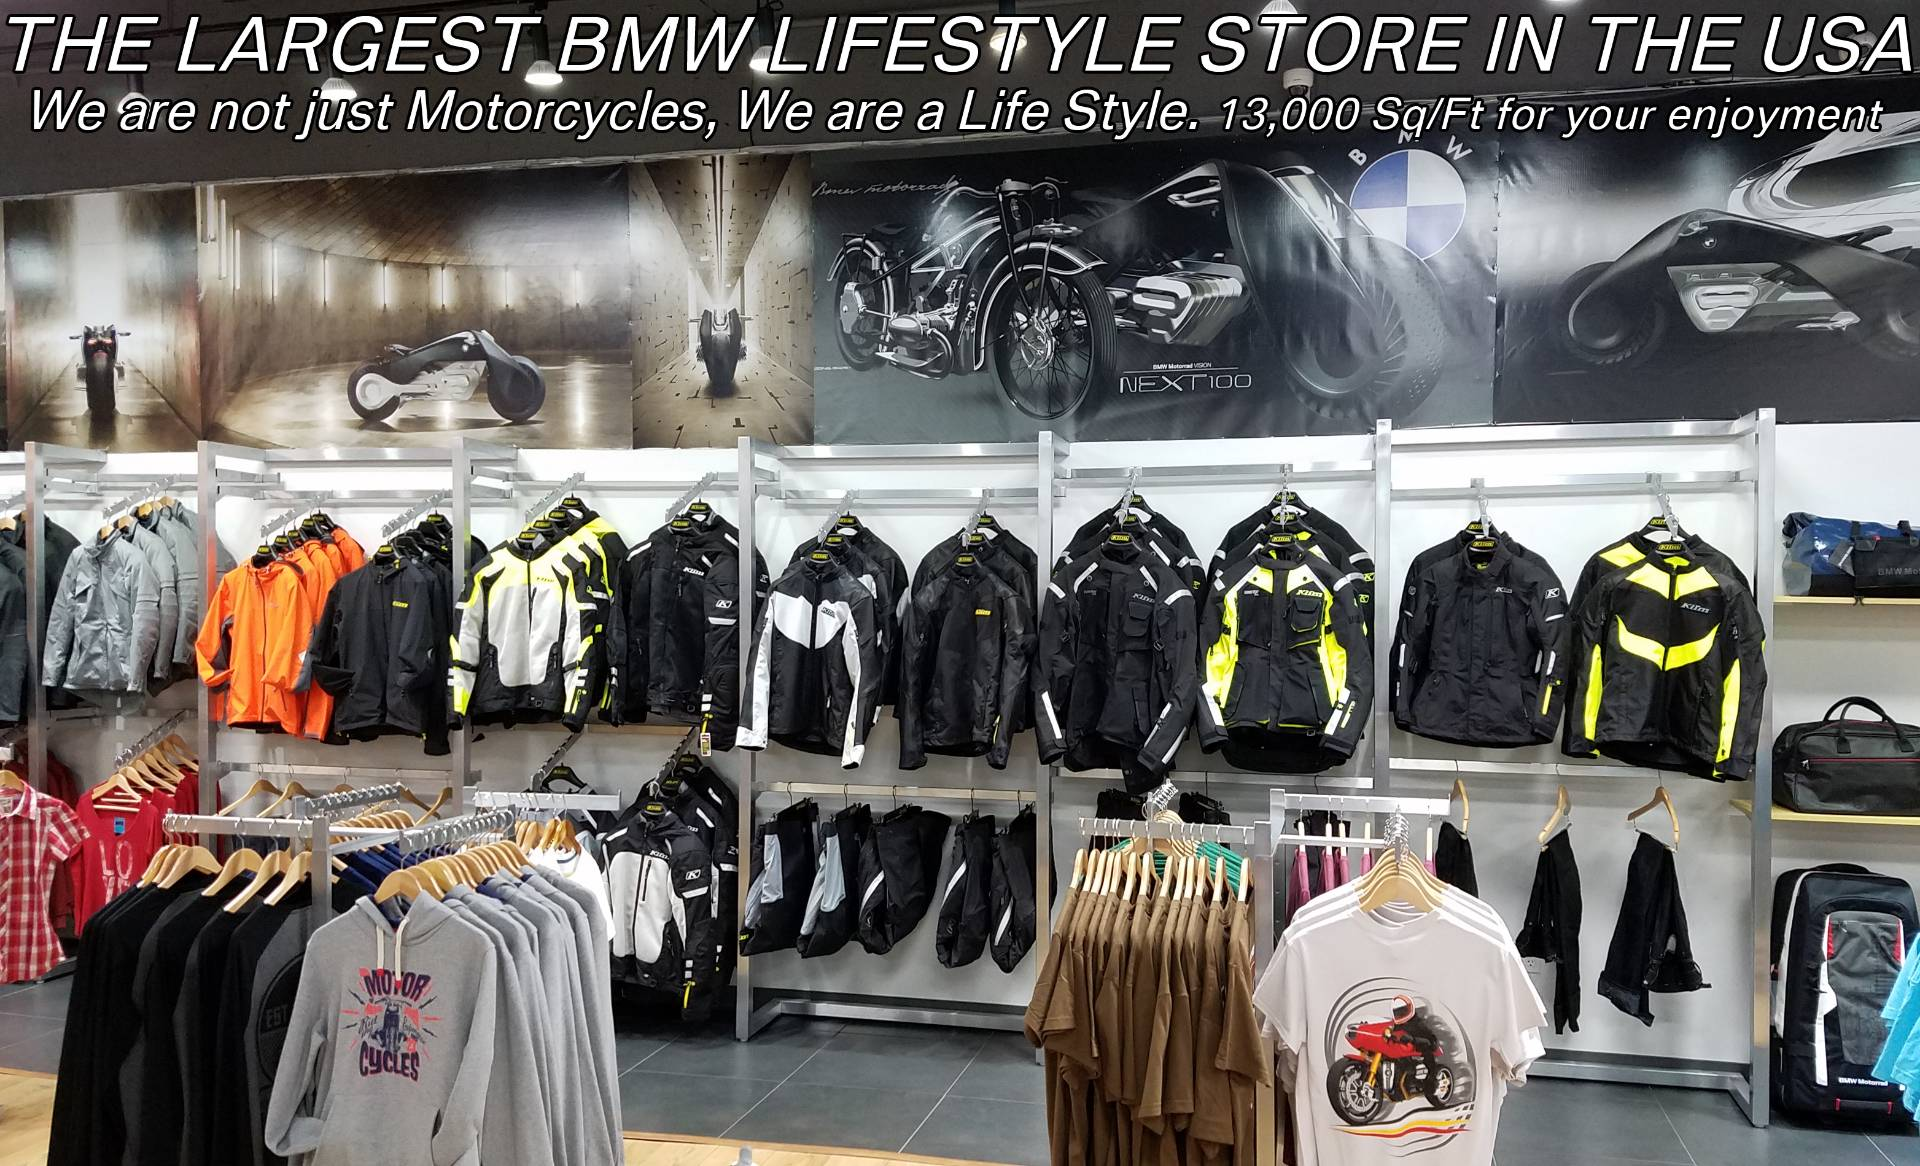 Used 2015 BMW R 1200 GSA for sale, BMW R 1200GSA for sale, BMW Motorcycle R1200GSA, used BMW Adventure, Dual, GS, BMW. BMW Motorcycles of Miami, Motorcycles of Miami, Motorcycles Miami, New Motorcycles, Used Motorcycles, pre-owned. #BMWMotorcyclesOfMiami #MotorcyclesOfMiami. - Photo 47